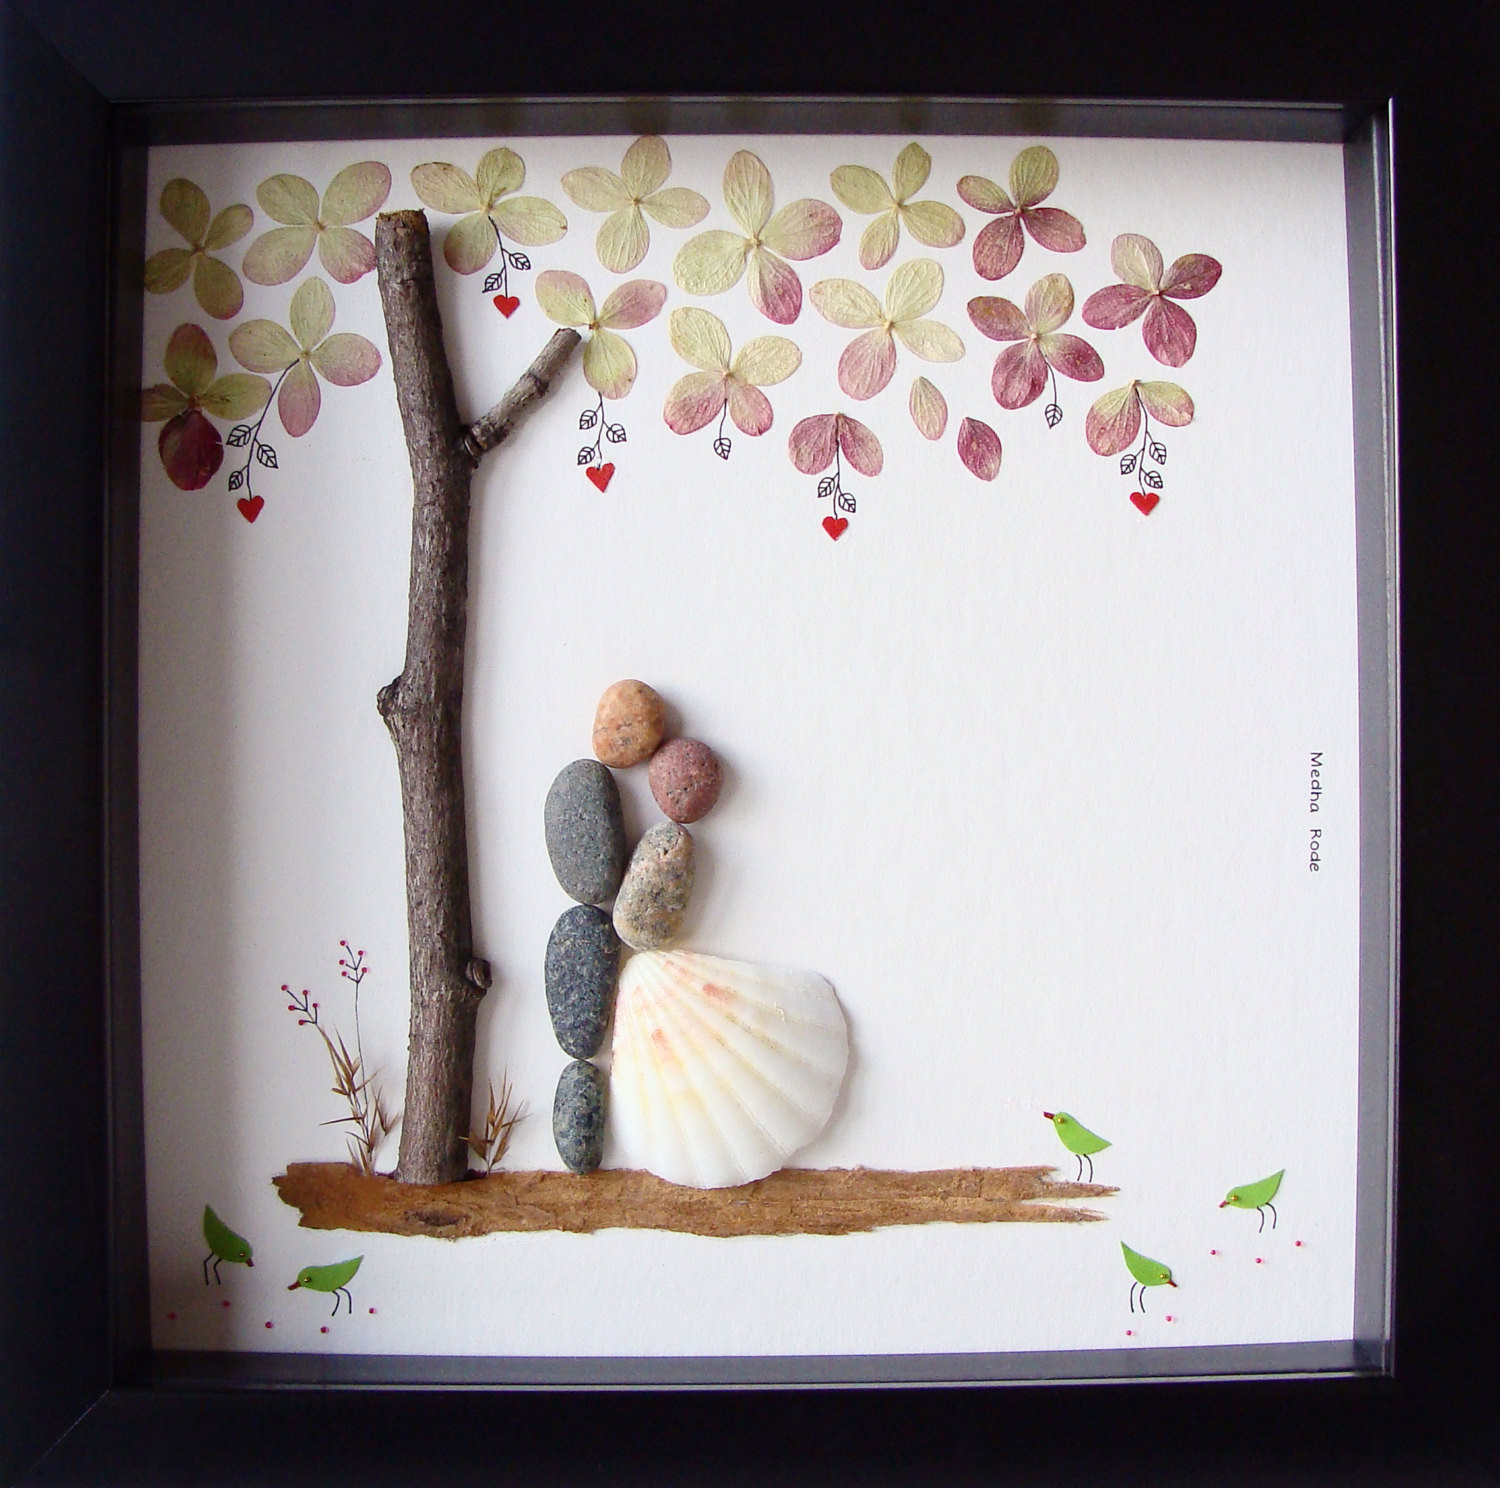 Creative Gift Ideas For Couples  Unique Wedding Gift For Couple Wedding Pebble Art by MedhaRode